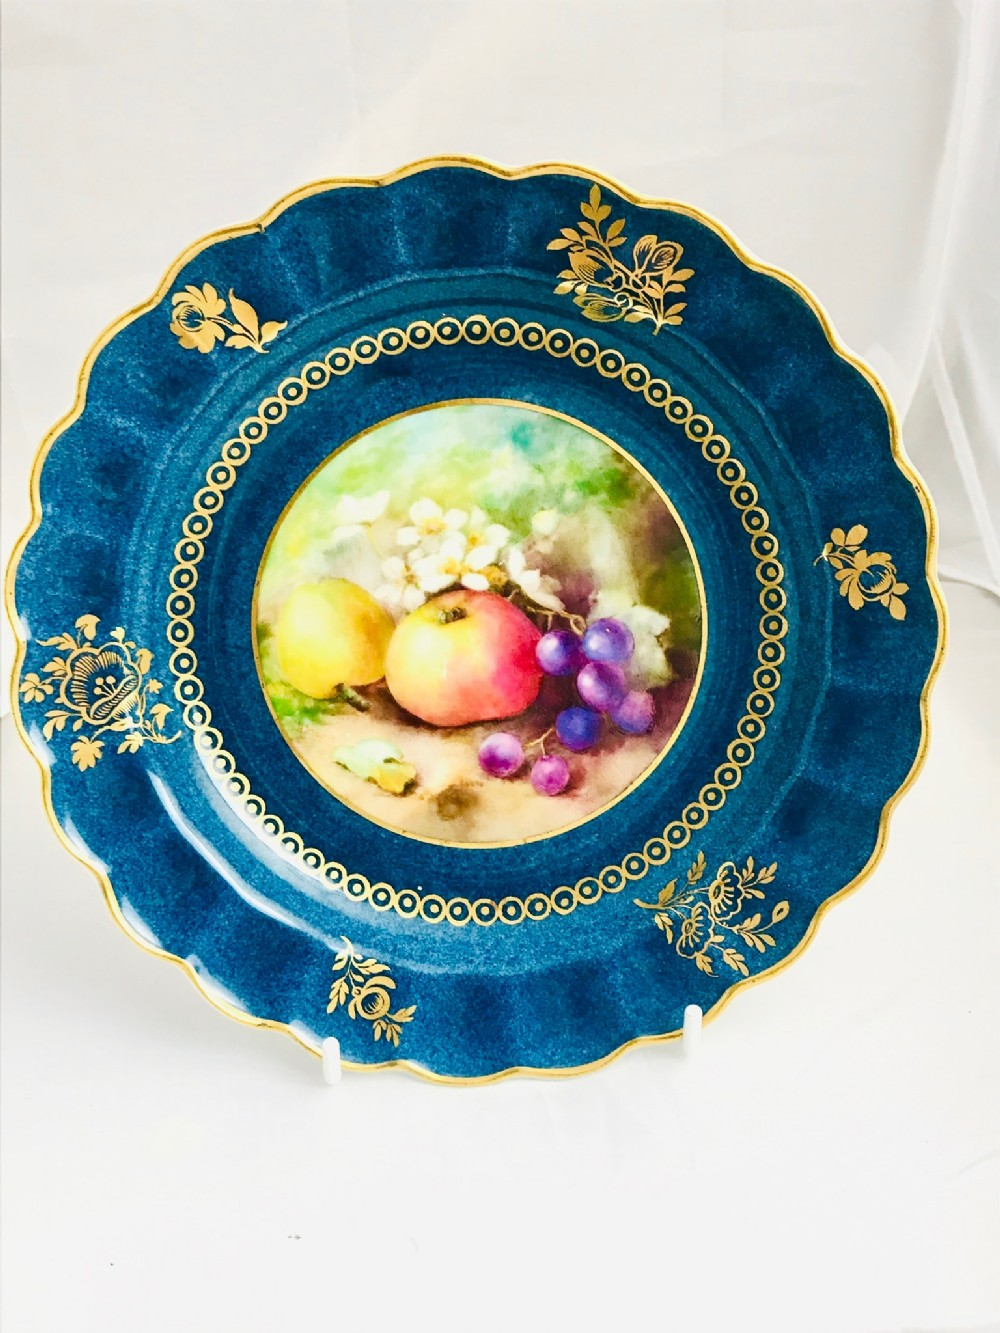 royal worcester display plate signed h martin dated 1922